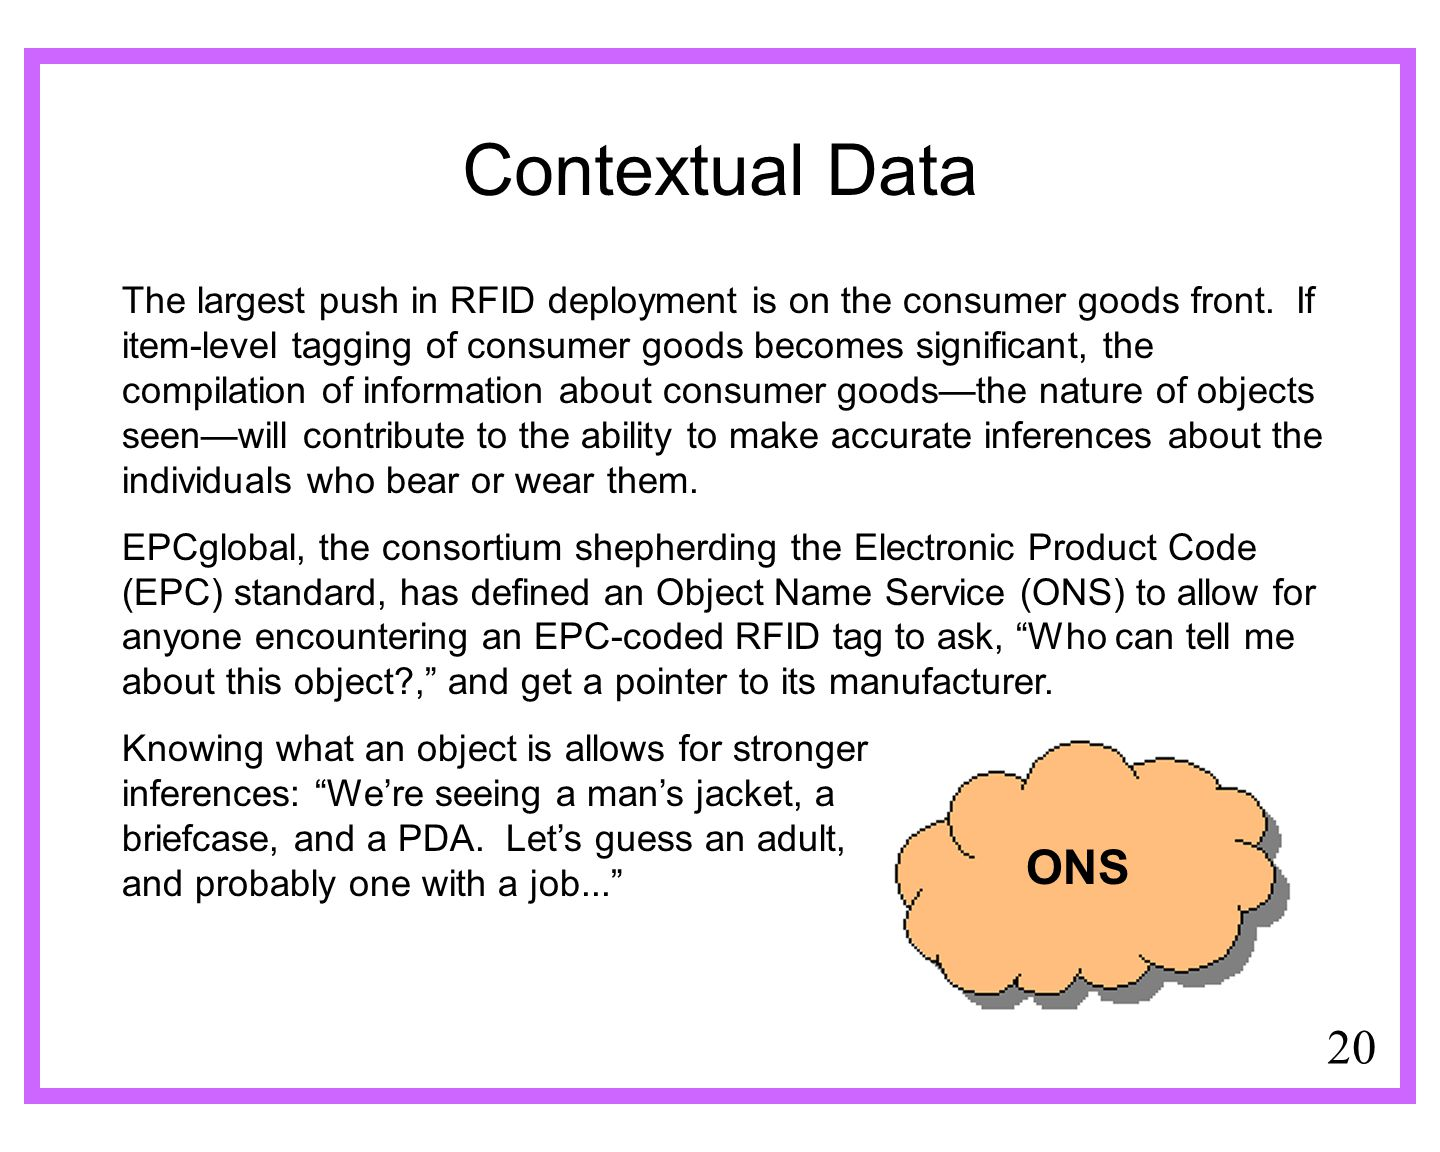 20 Contextual Data The largest push in RFID deployment is on the consumer goods front. If item-level tagging of consumer goods becomes significant, th